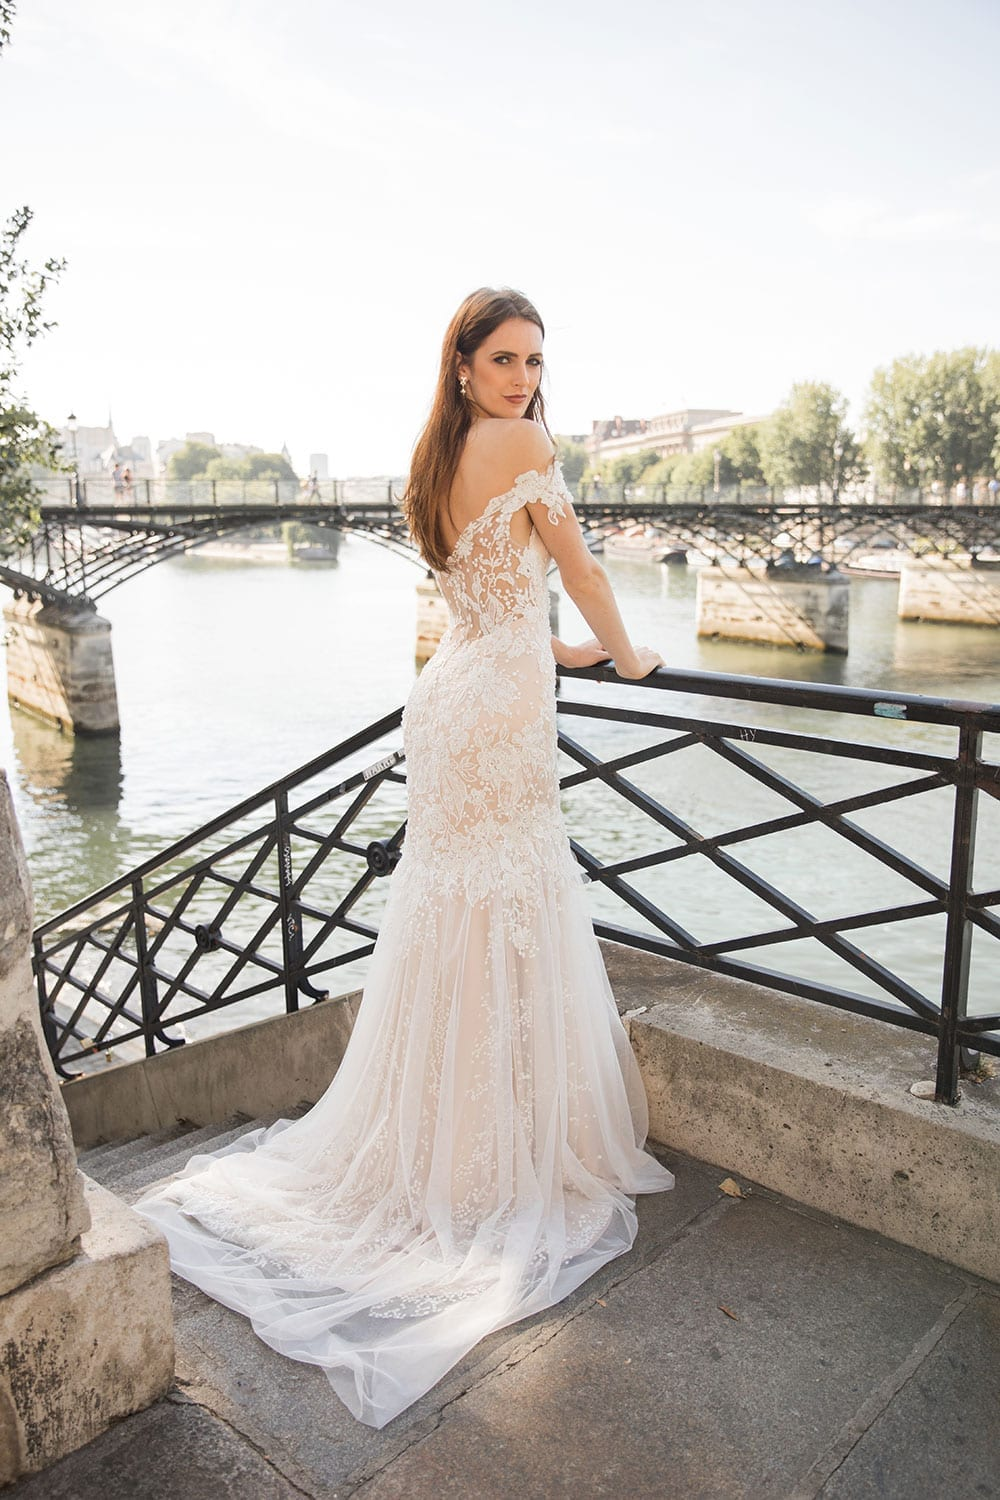 Model wearing Vinka Design Sashia Wedding Dress, an Off-Shoulder Fitted Lace and Tulle Gown on Paris balcony